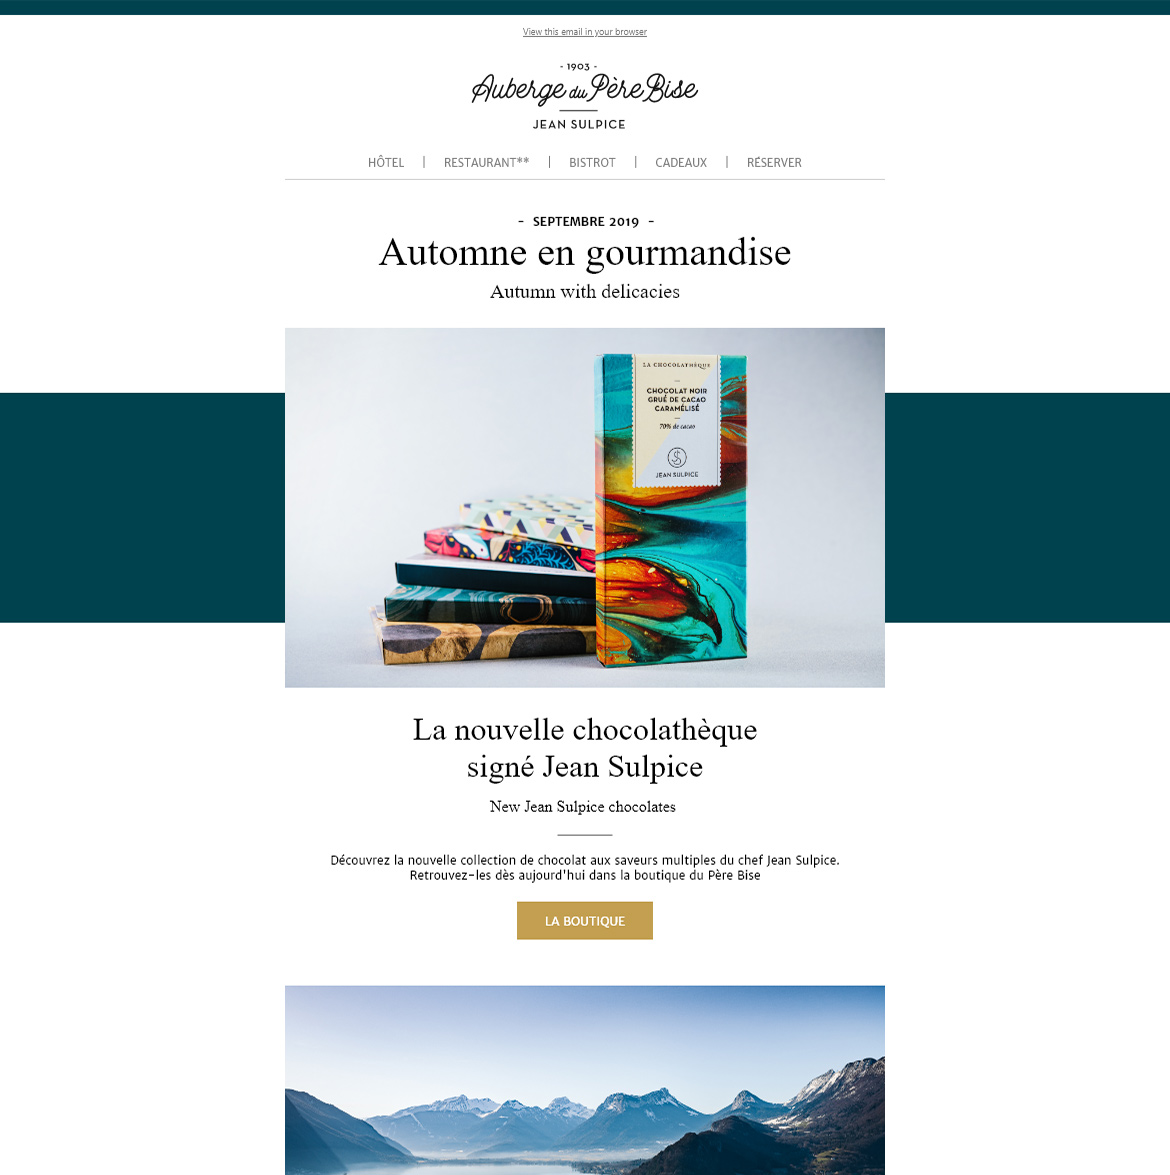 newsletter-auberge-pere-bise